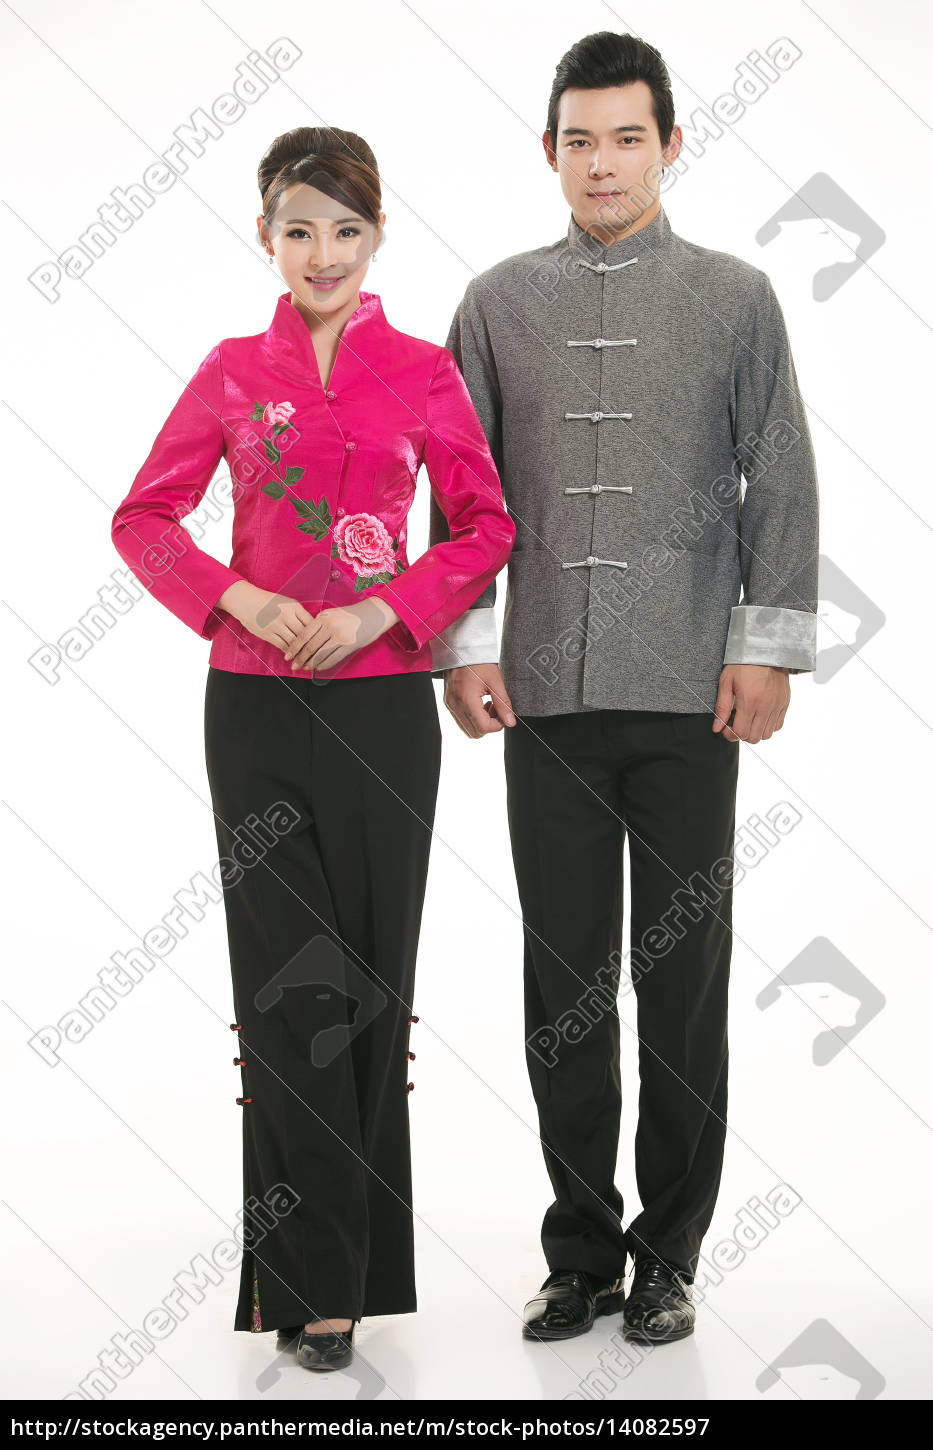 wearing, chinese, clothing, waiter, in, front - 14082597